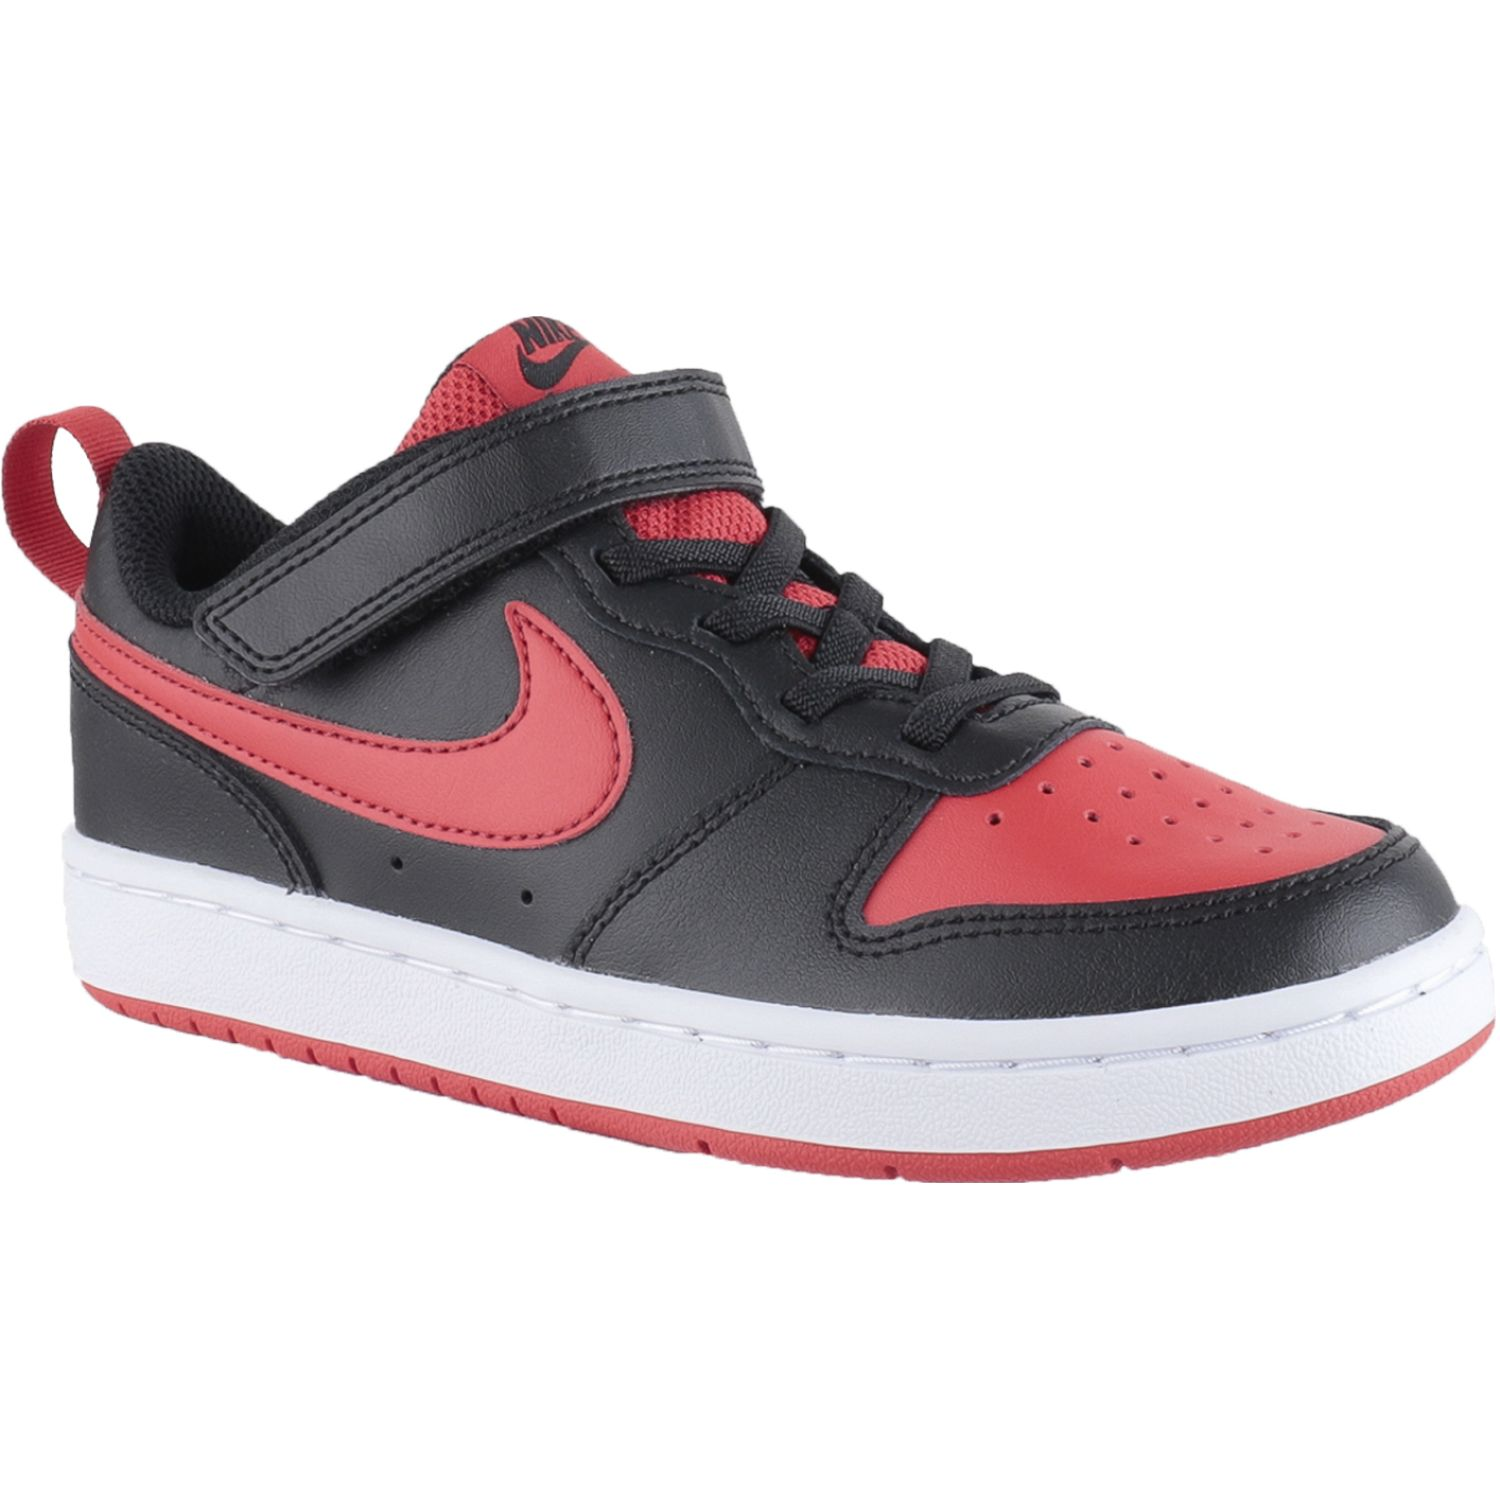 Nike Nike Court Borough Low 2 Bpv Negro / rojo Para caminar